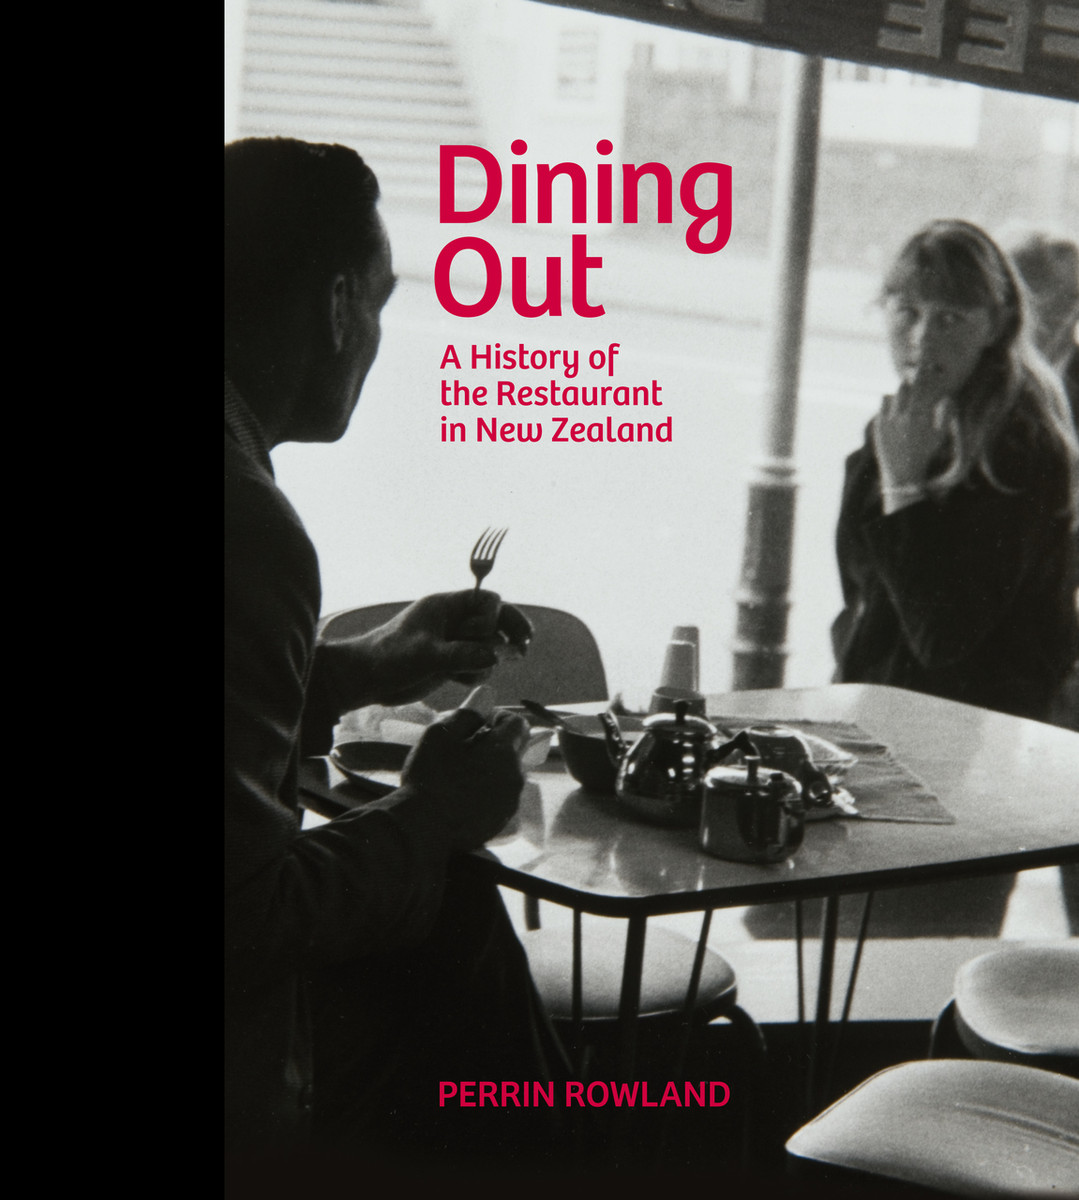 Dining Out: A History of the Restaurant in New Zealand by Perrin Rowland